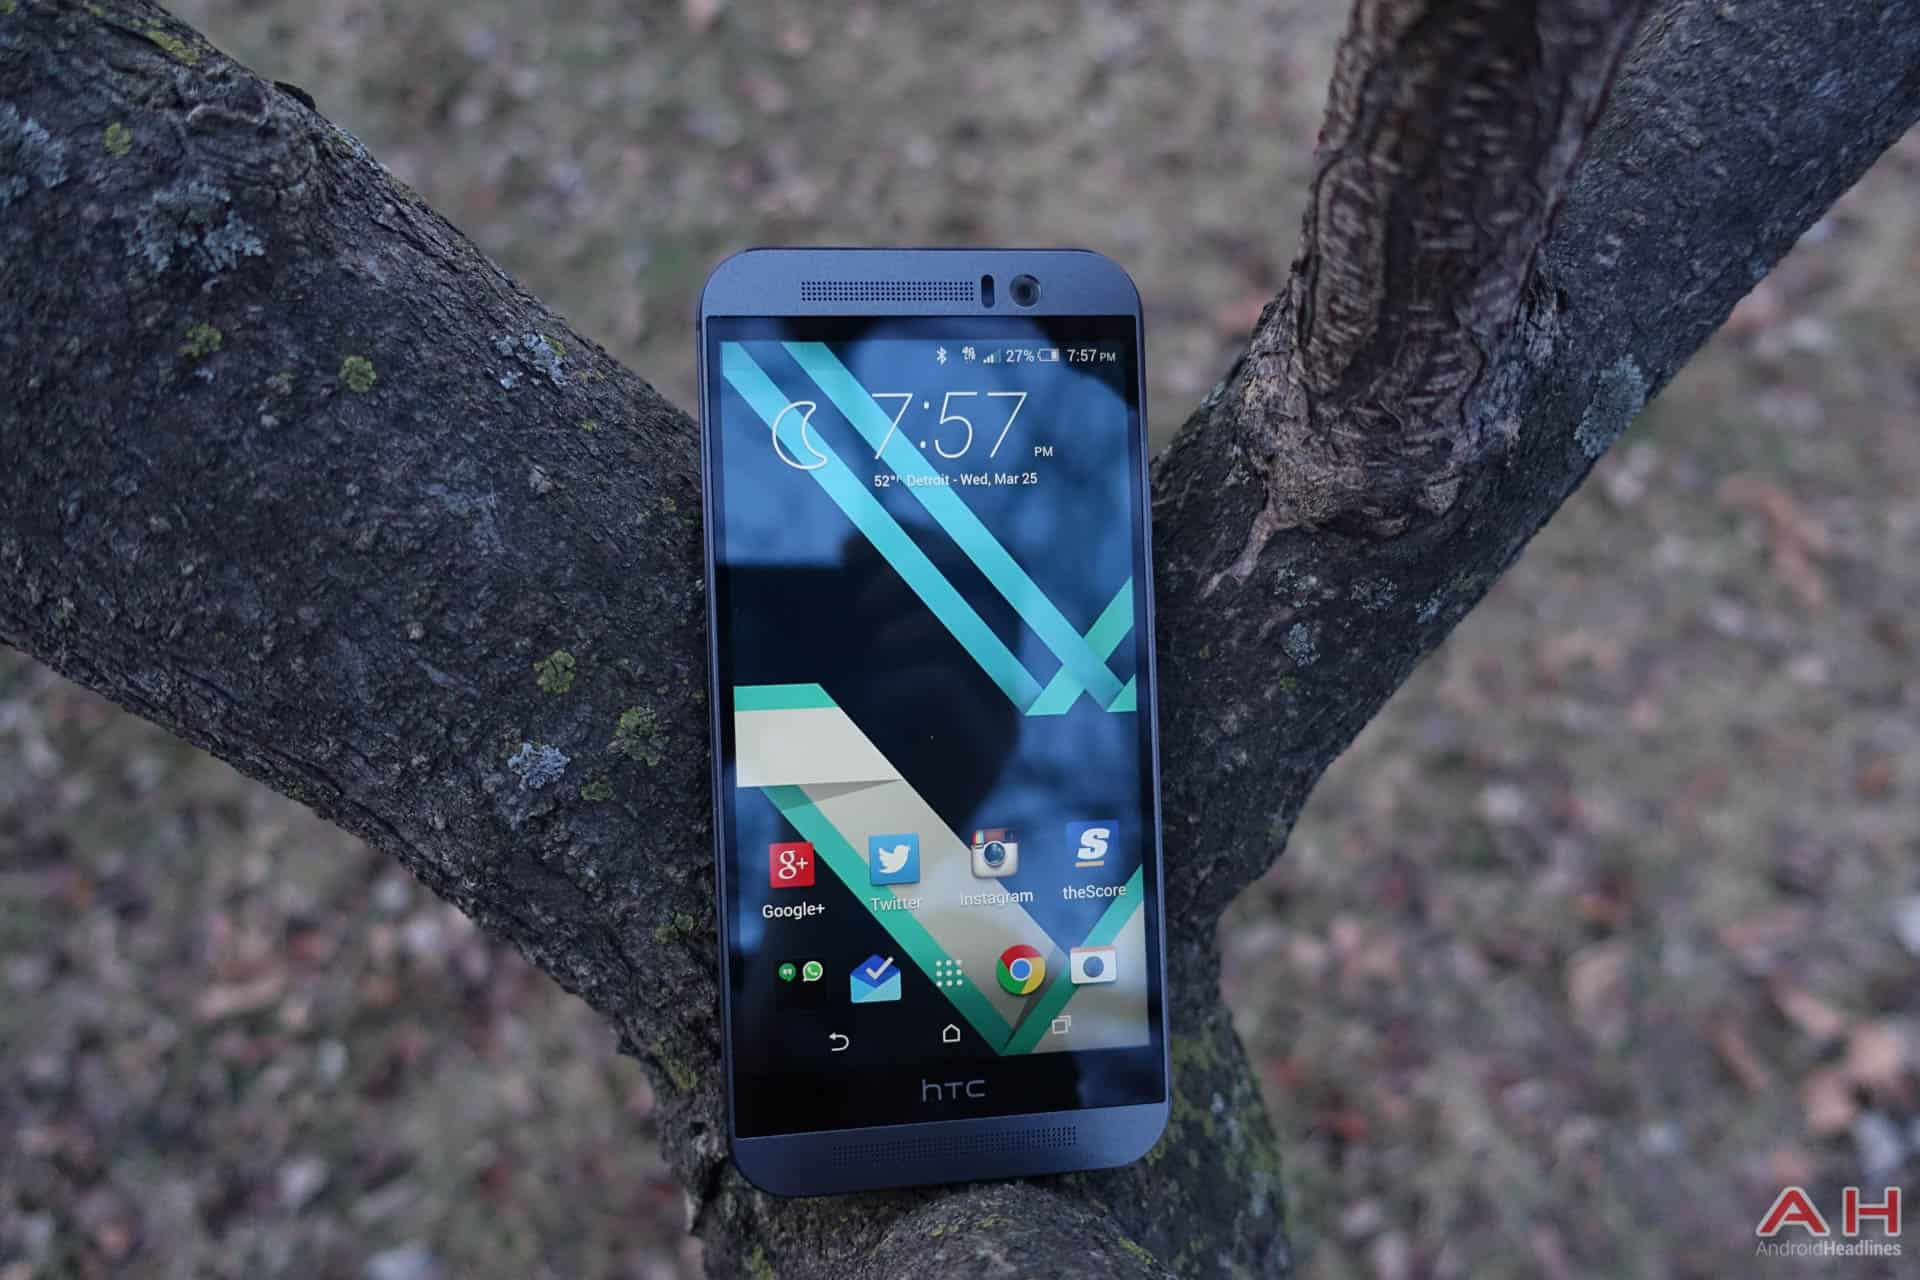 HTC-One-M9-Review-AH-28